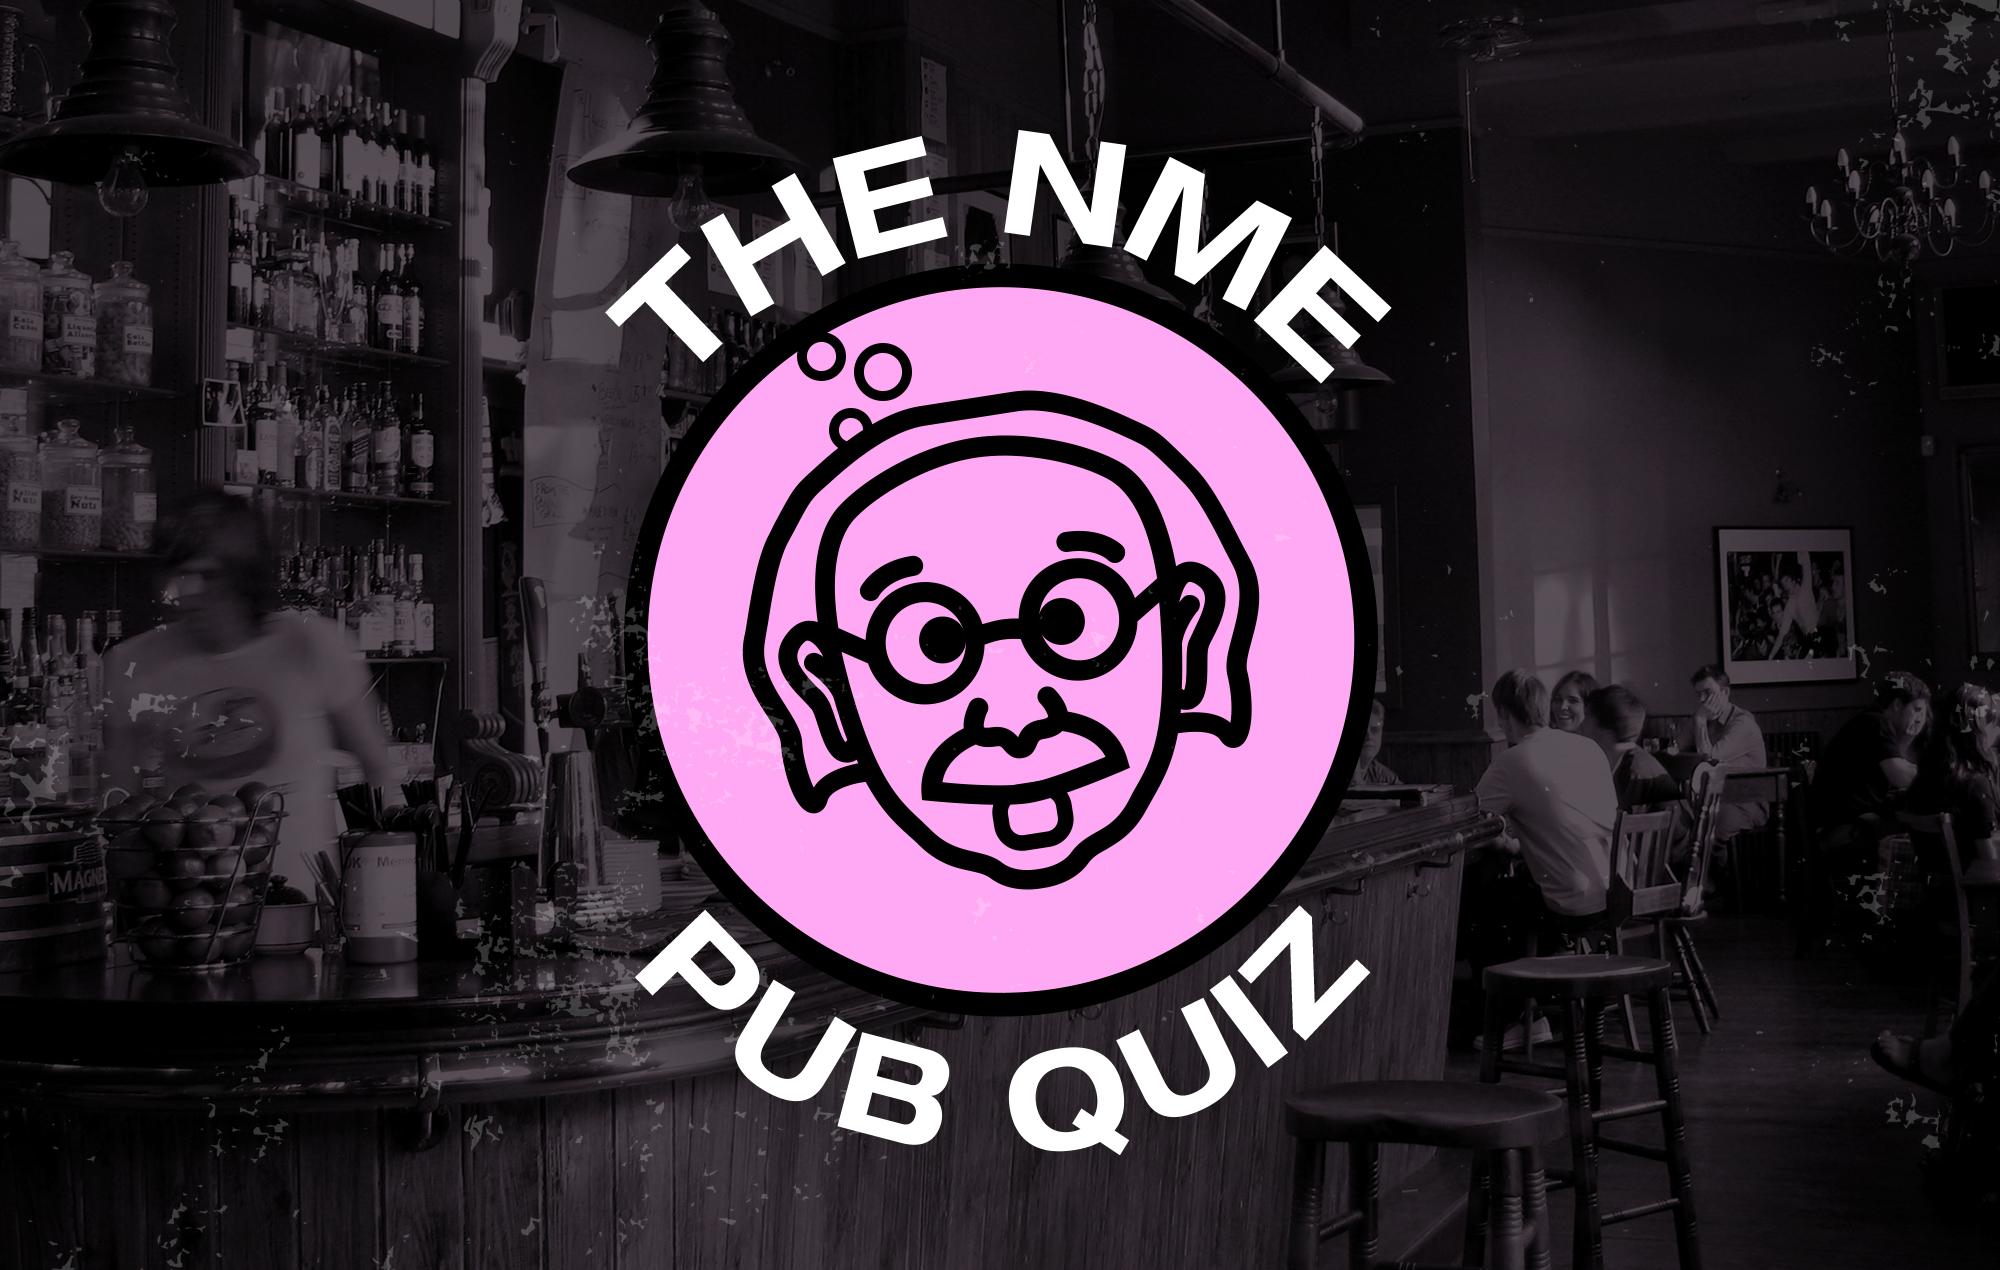 Get your pints in, it's the NME Pub Quiz